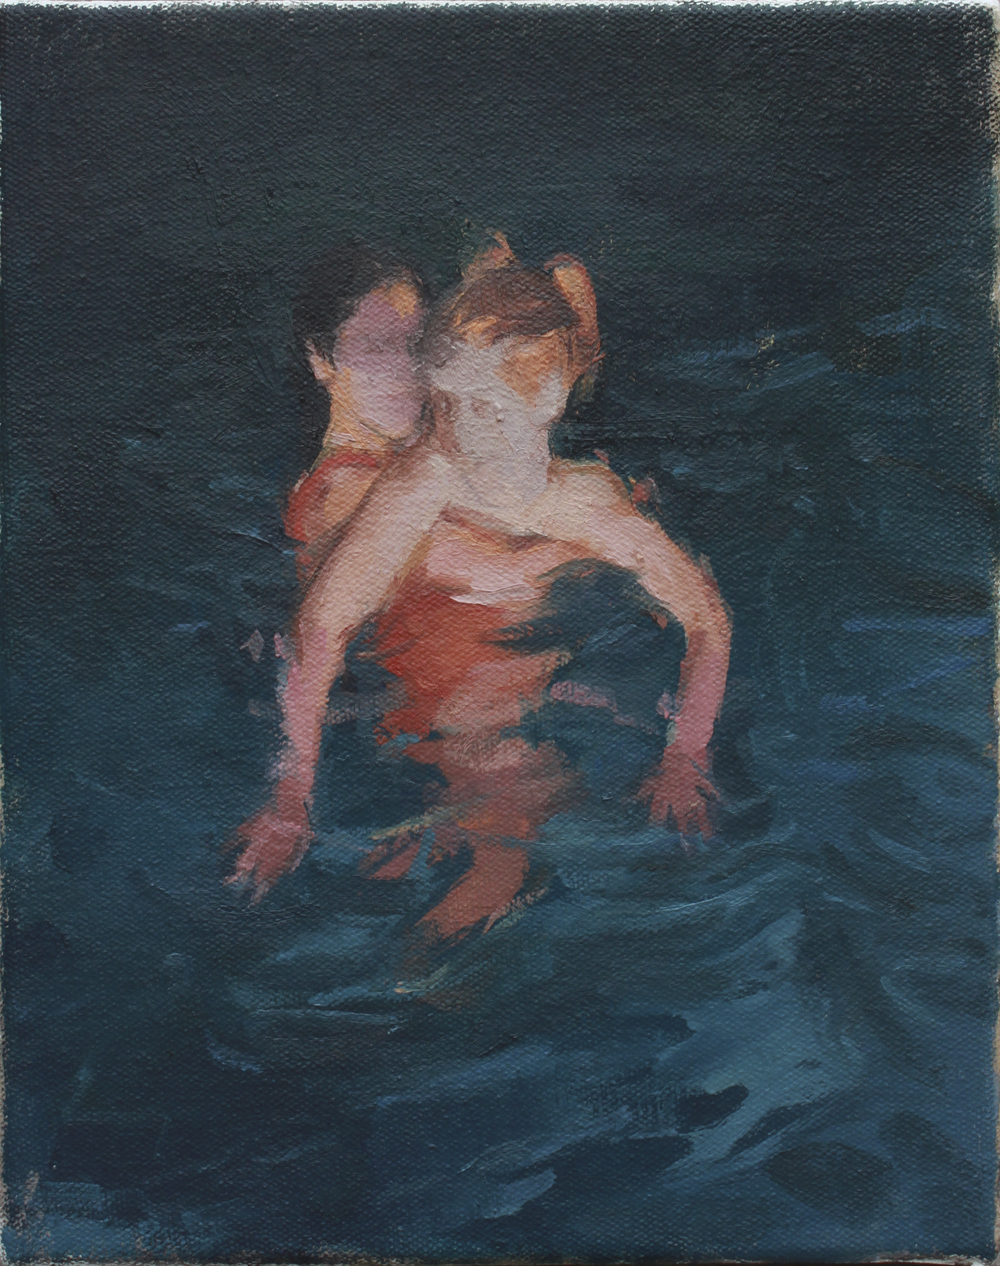 """swimmers  oil on canvas 8x10"""" 2013  private collection NYC  purchase prints"""